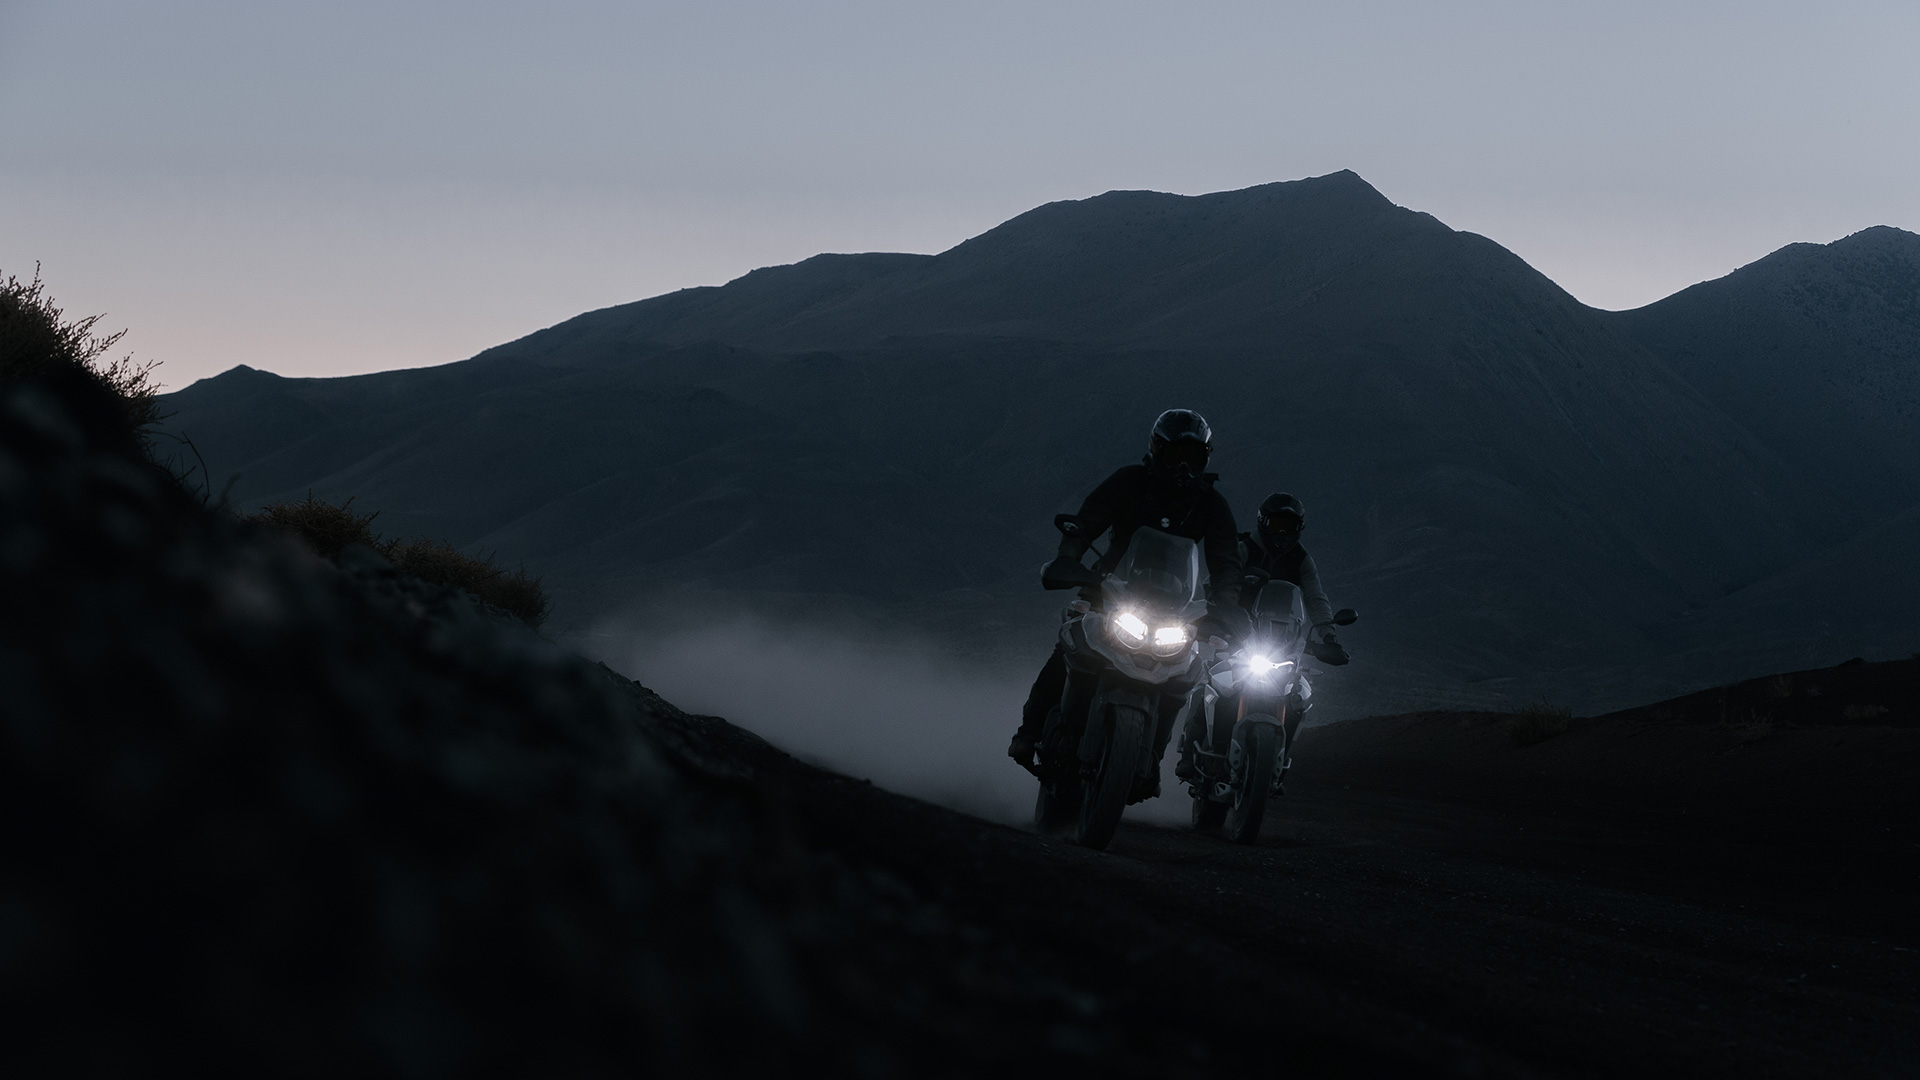 Two Triumph Tigers riding across the desert